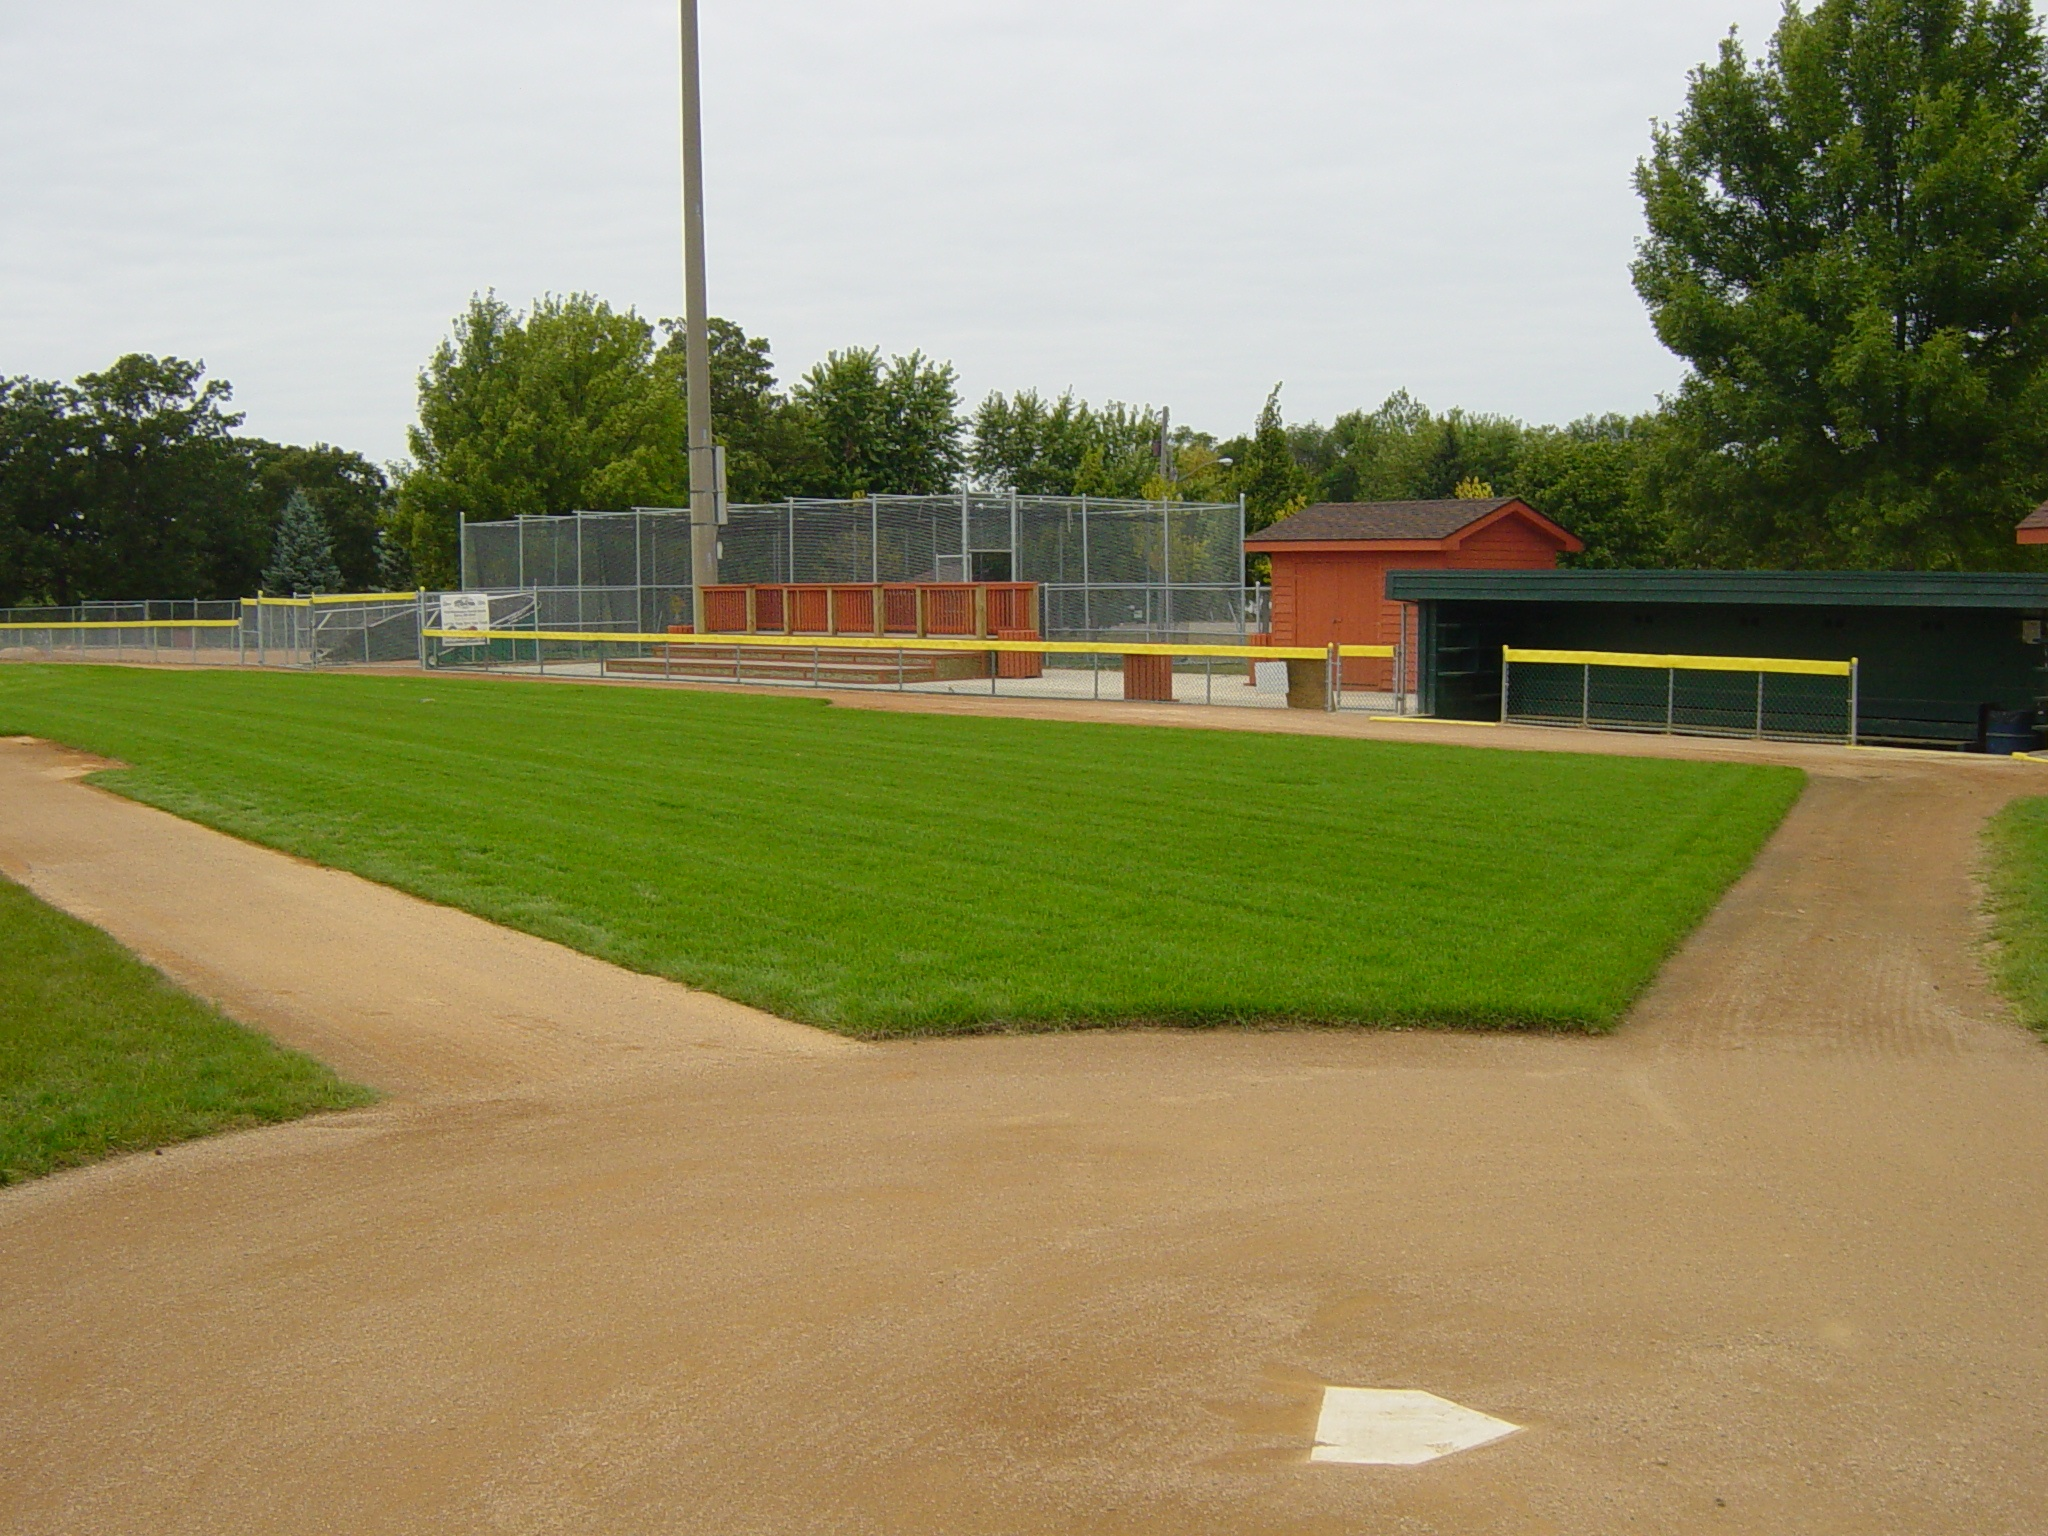 1B foul area, dugout & fan patio 2011. Veterans Field.